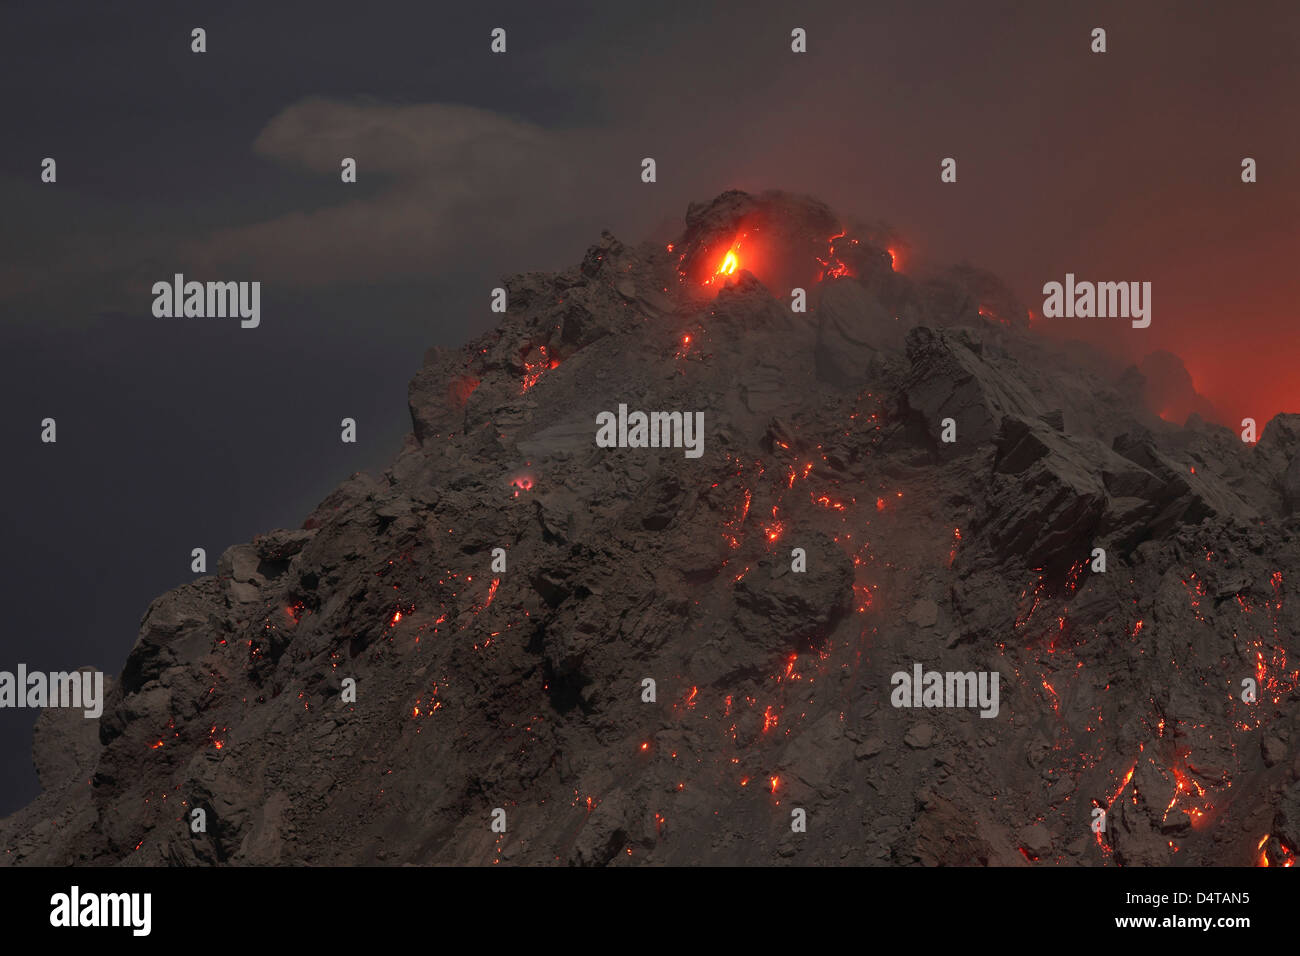 December 1, 2012 - Glowing summit of Rerombola lava dome of Paluweh volcano during eruption in 2012, Flores, Indonesia. - Stock Image